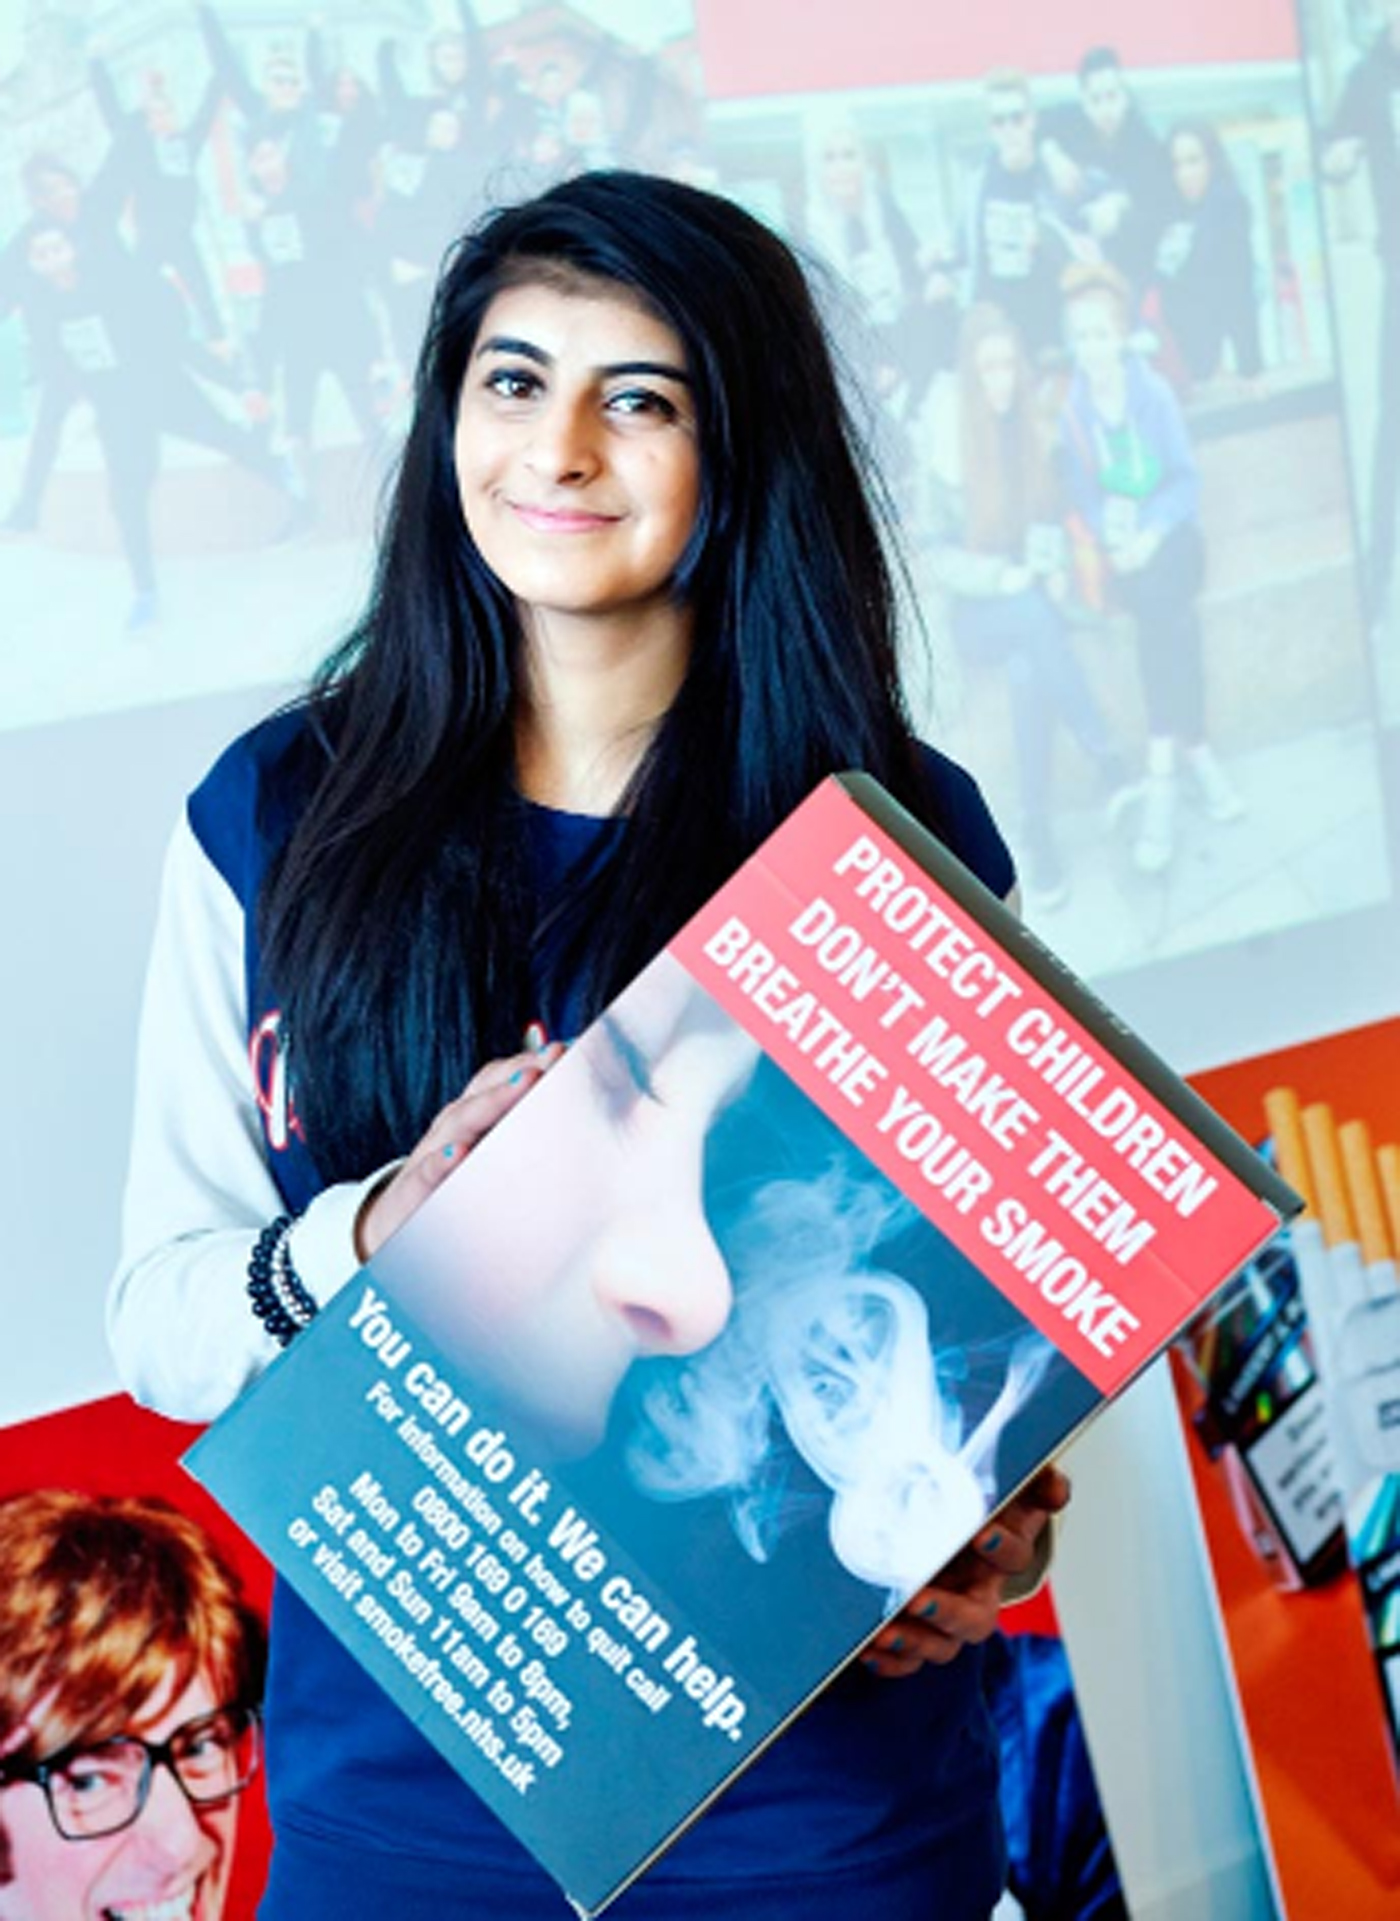 Blackburn youngsters campaign for governmen